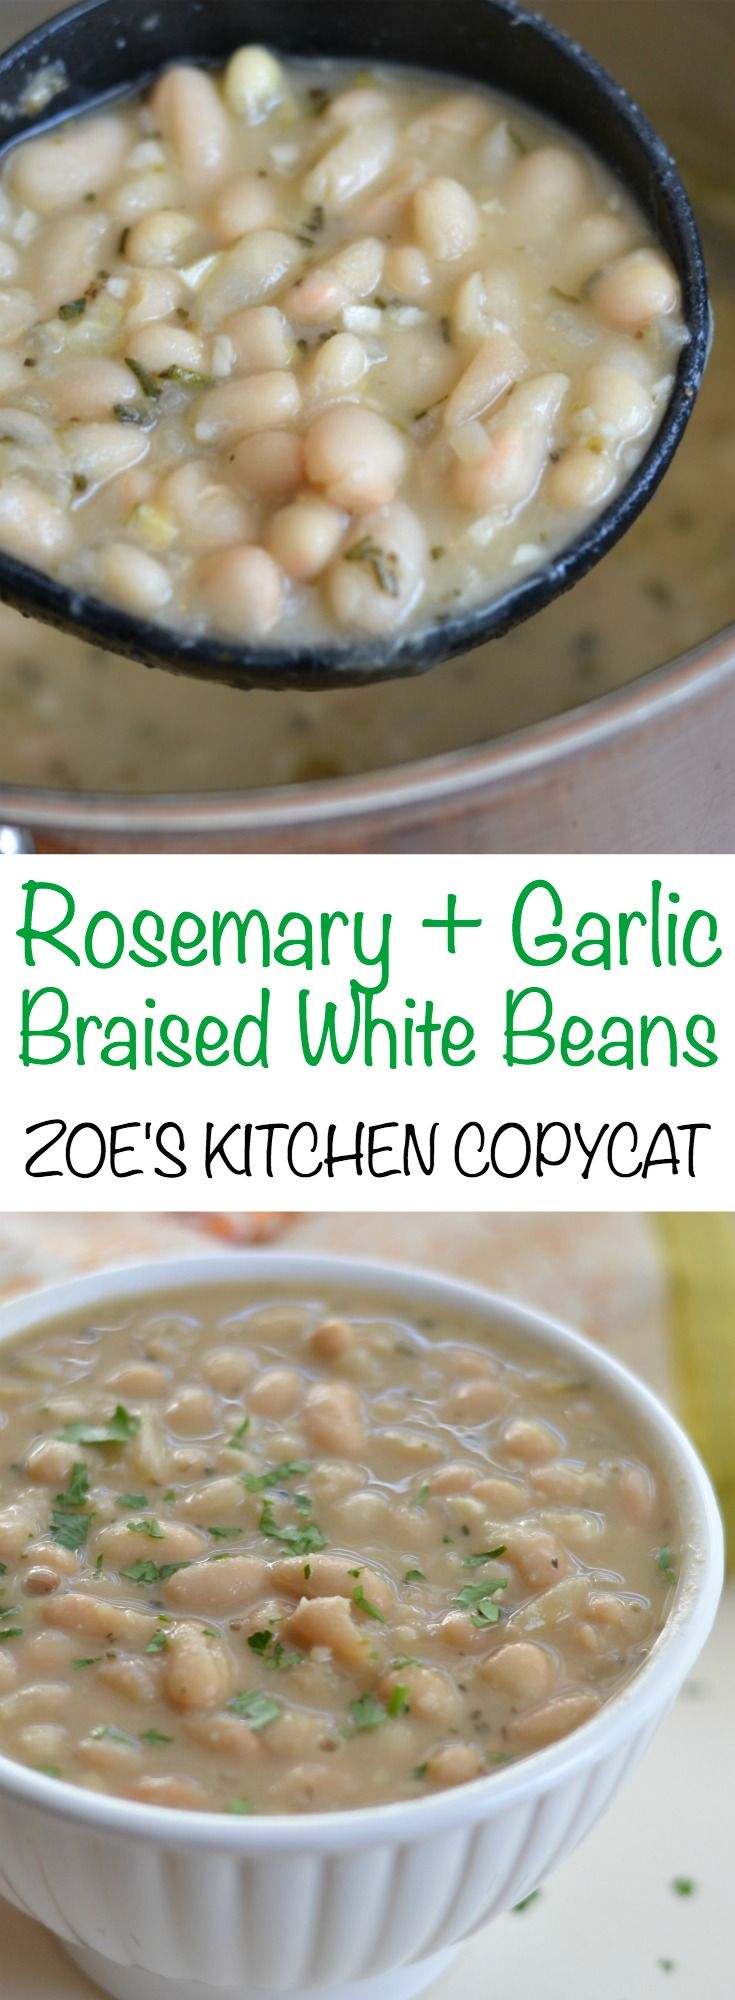 Based on our favorite beans from Zoe's kitchen, this easy recipe for rosemary…